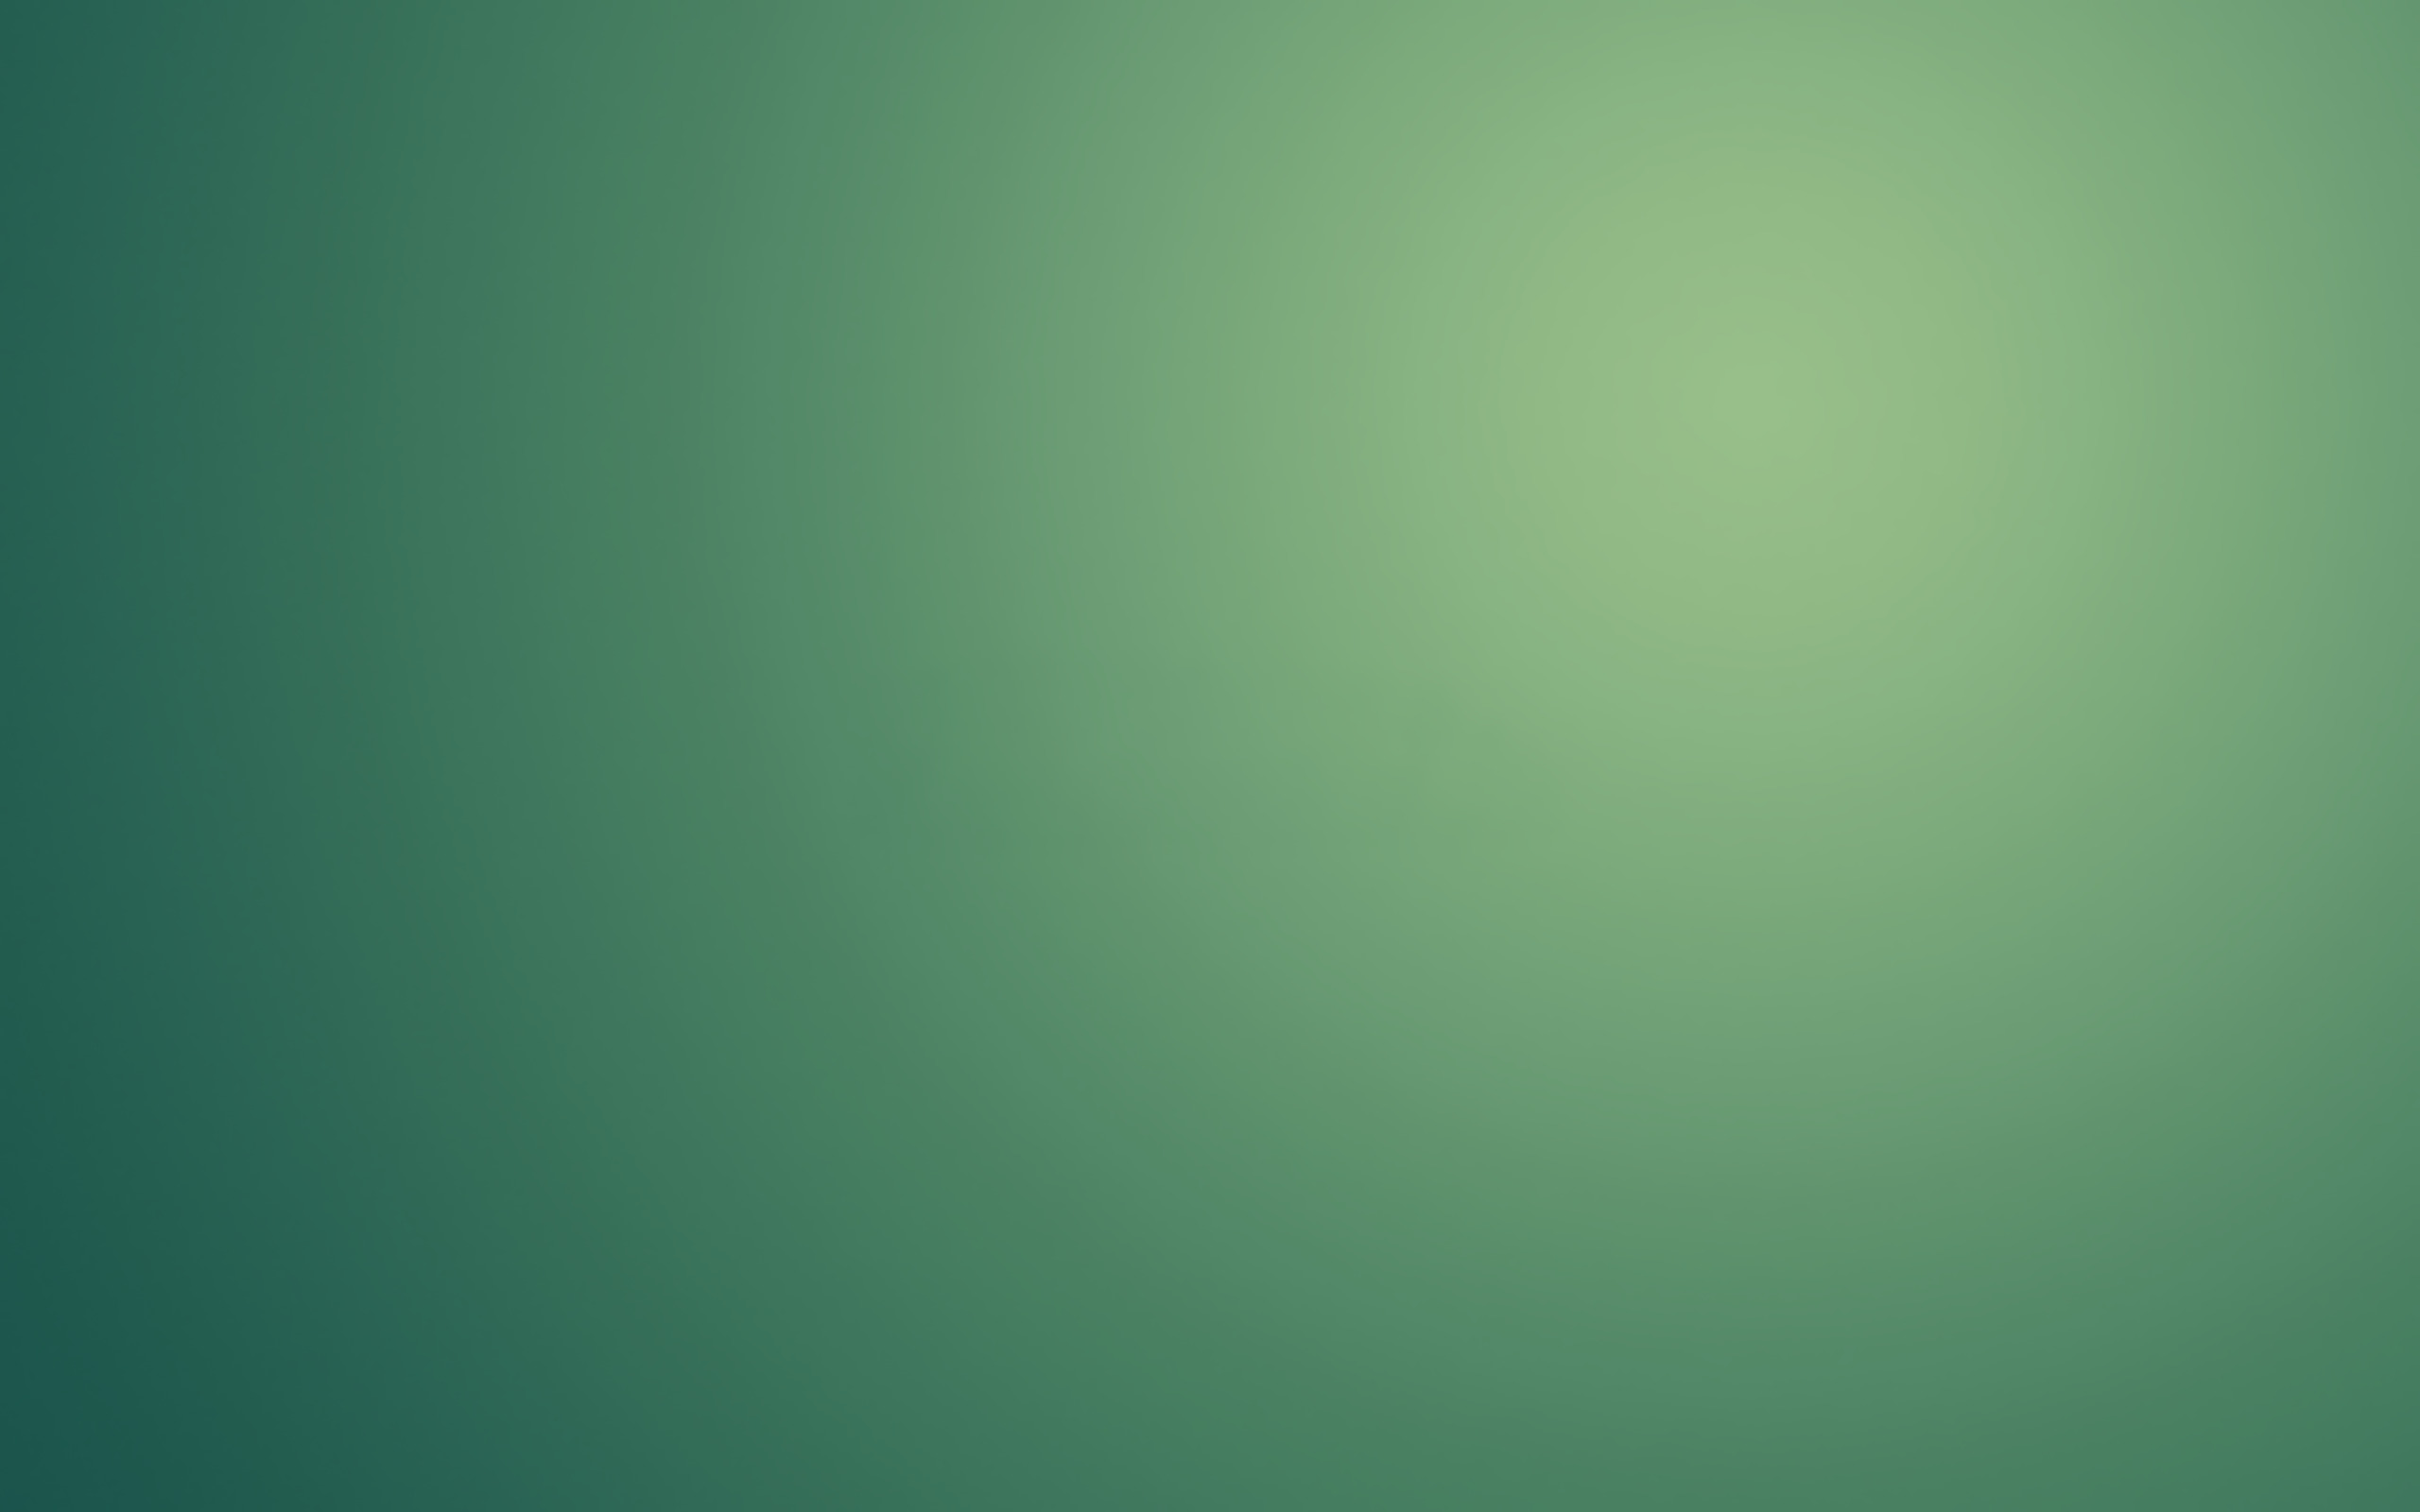 gaussian Blur Turquoise HD Wallpaper